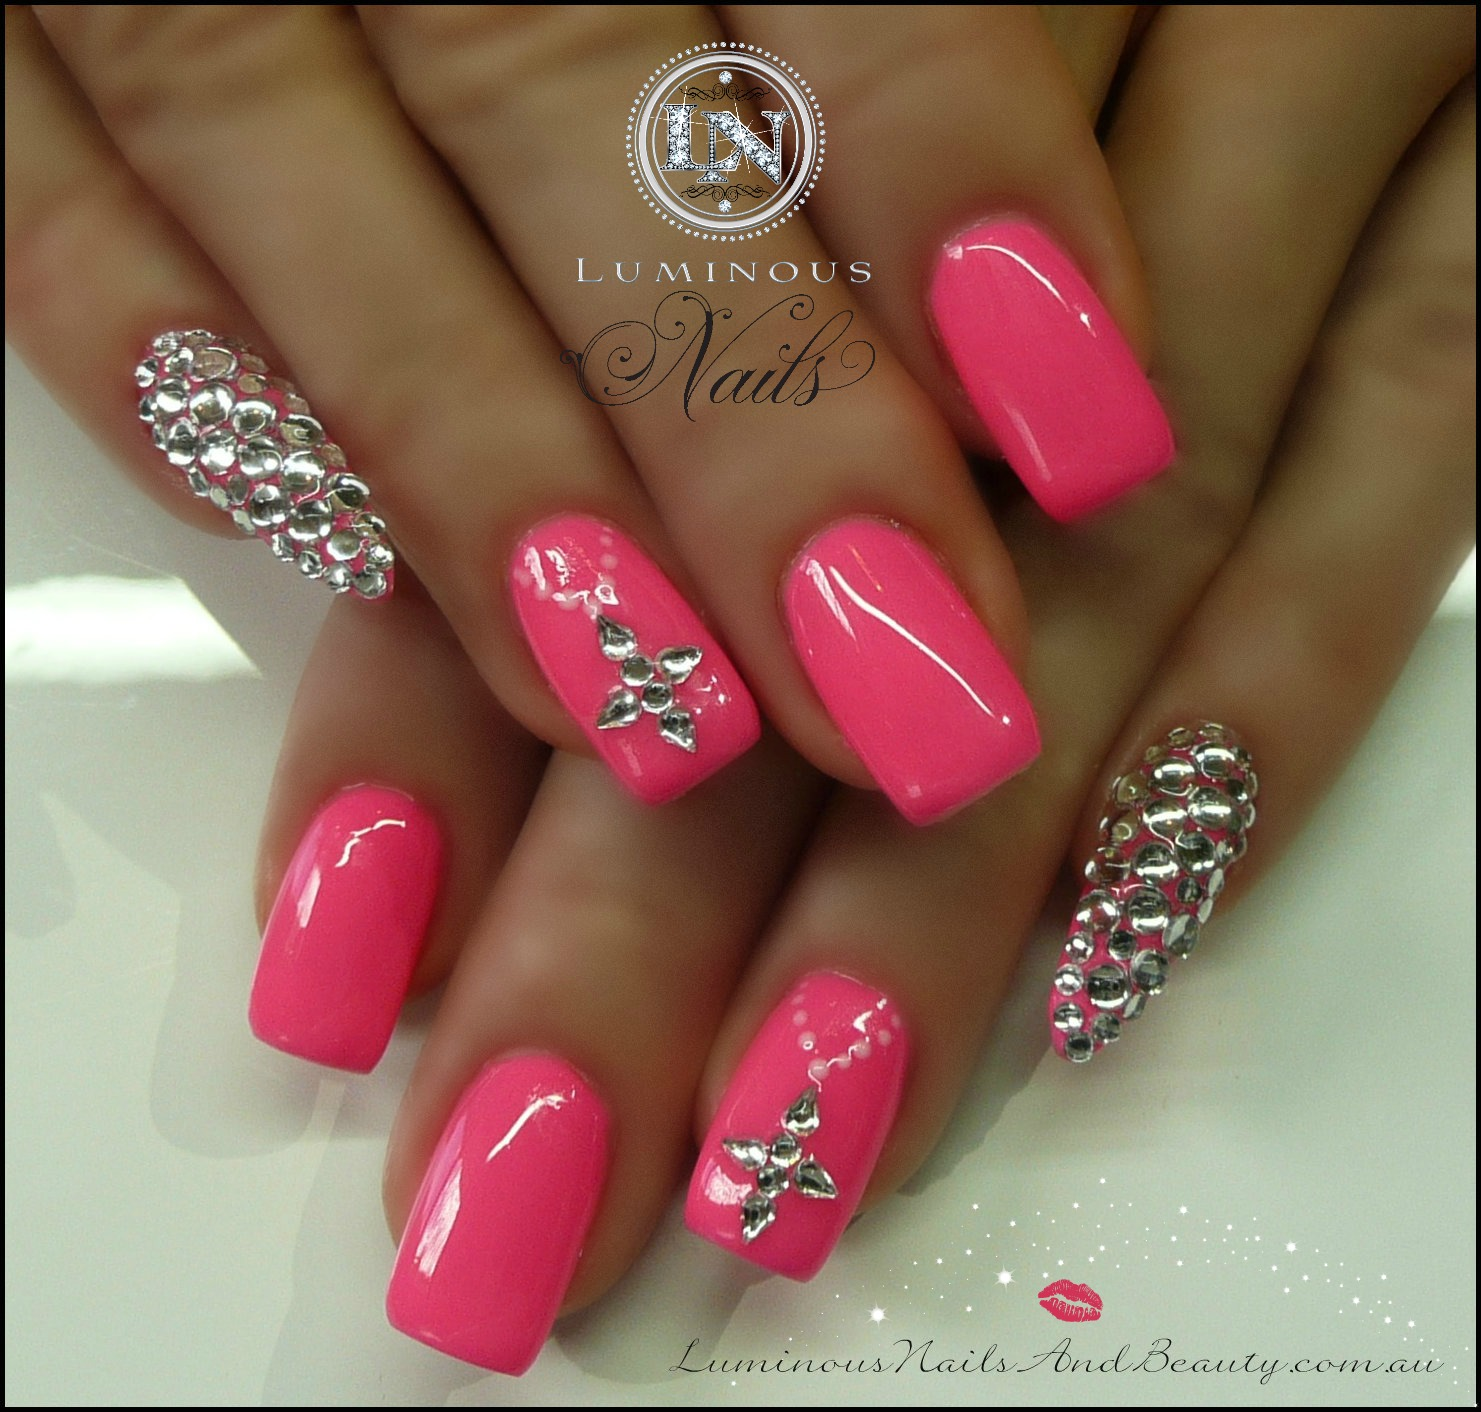 The Astonishing Best acrylic nails art designs Digital Imagery